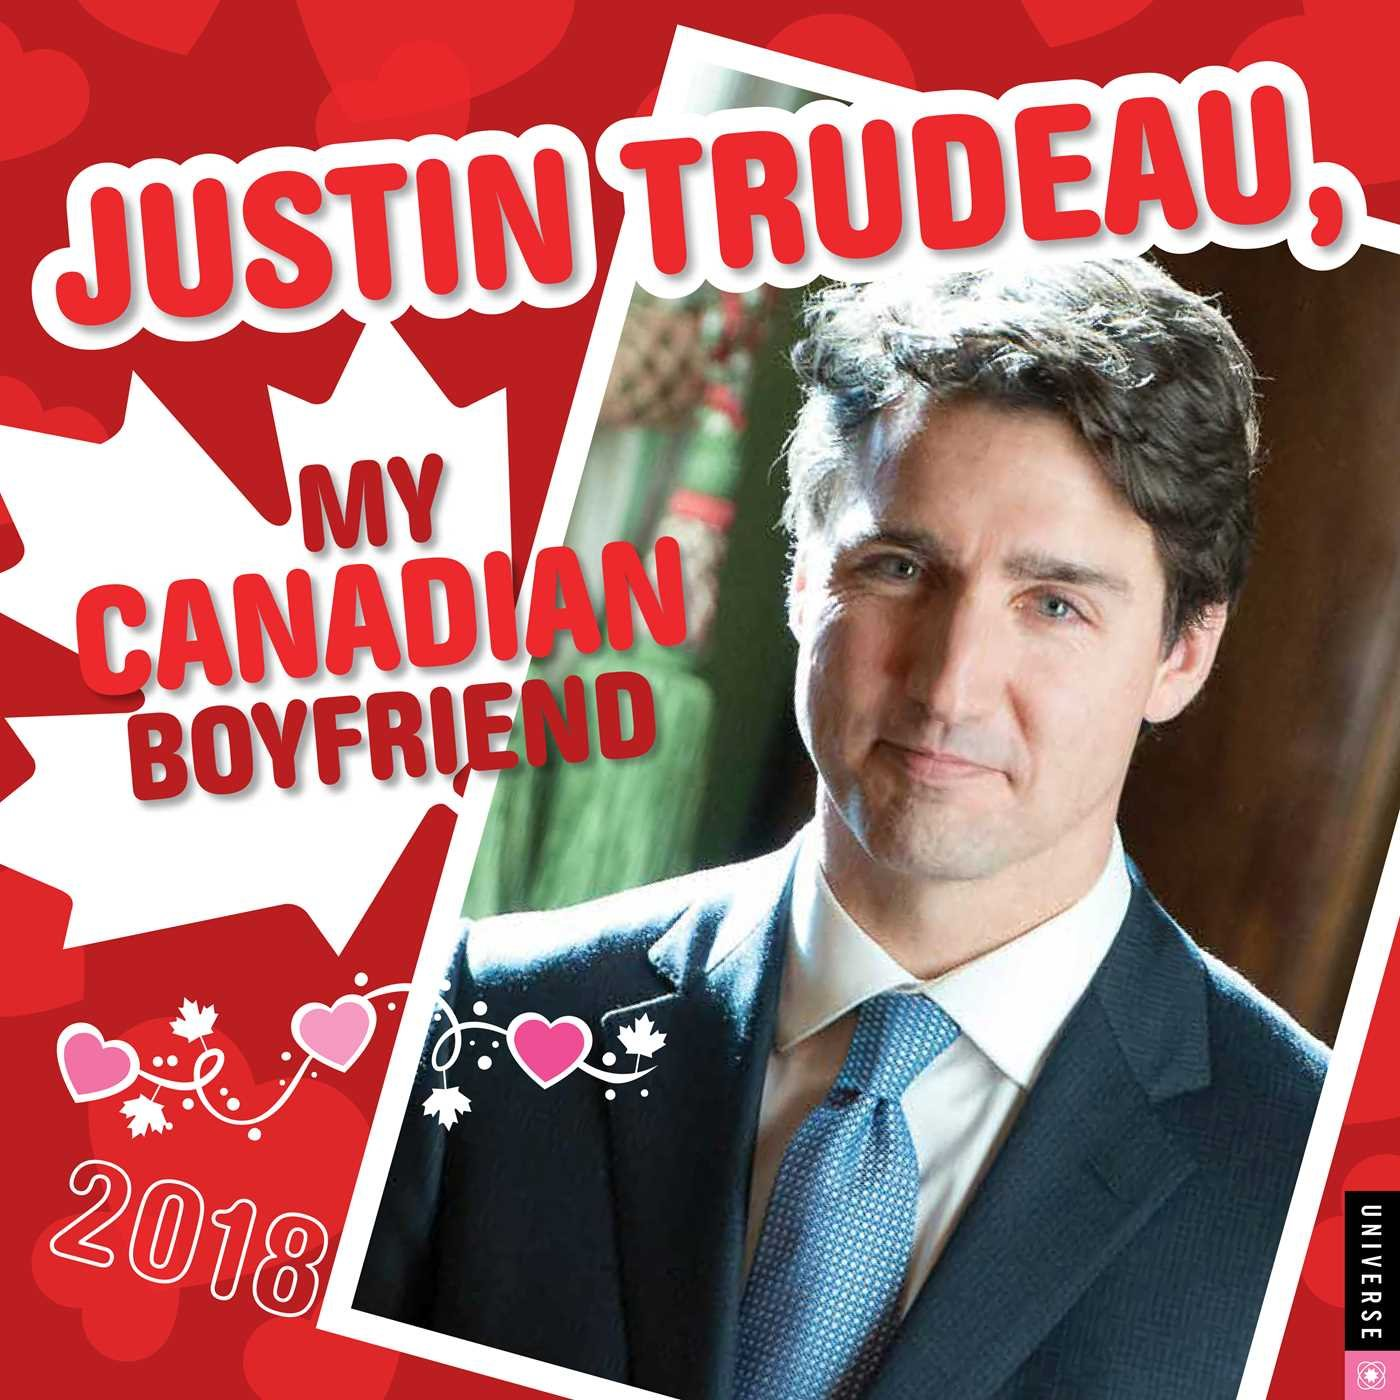 It's for real... a JUSTIN TRUDEAU 'My Canadian Boyfriend' Calendar